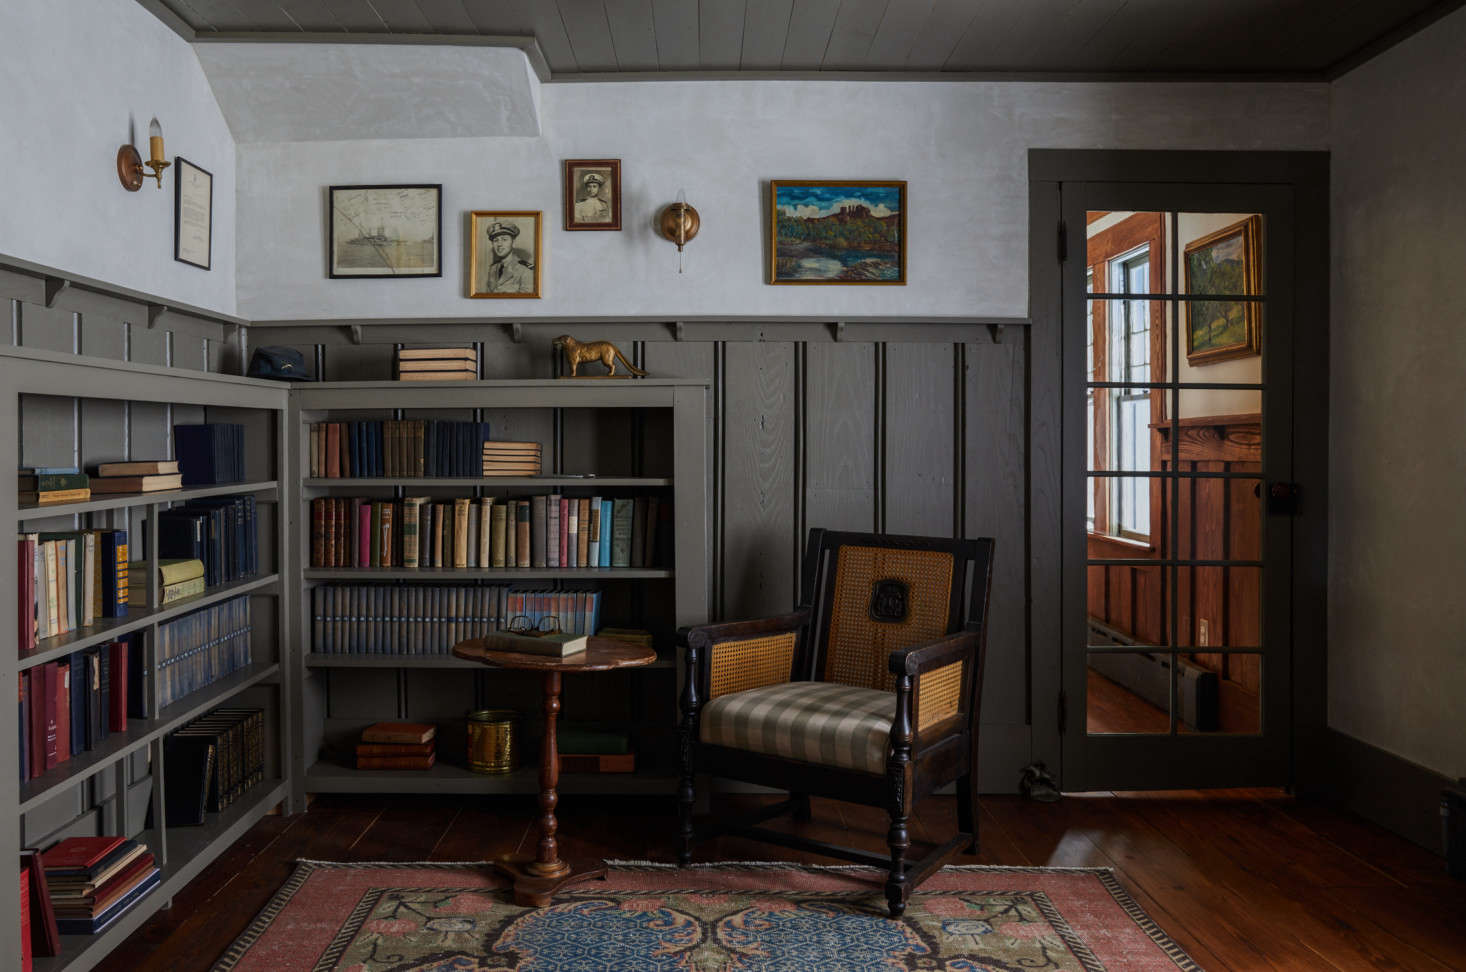 When the couple purchased the home, they found many bits of ephemera, including old photos and books that now occupy the home&#8